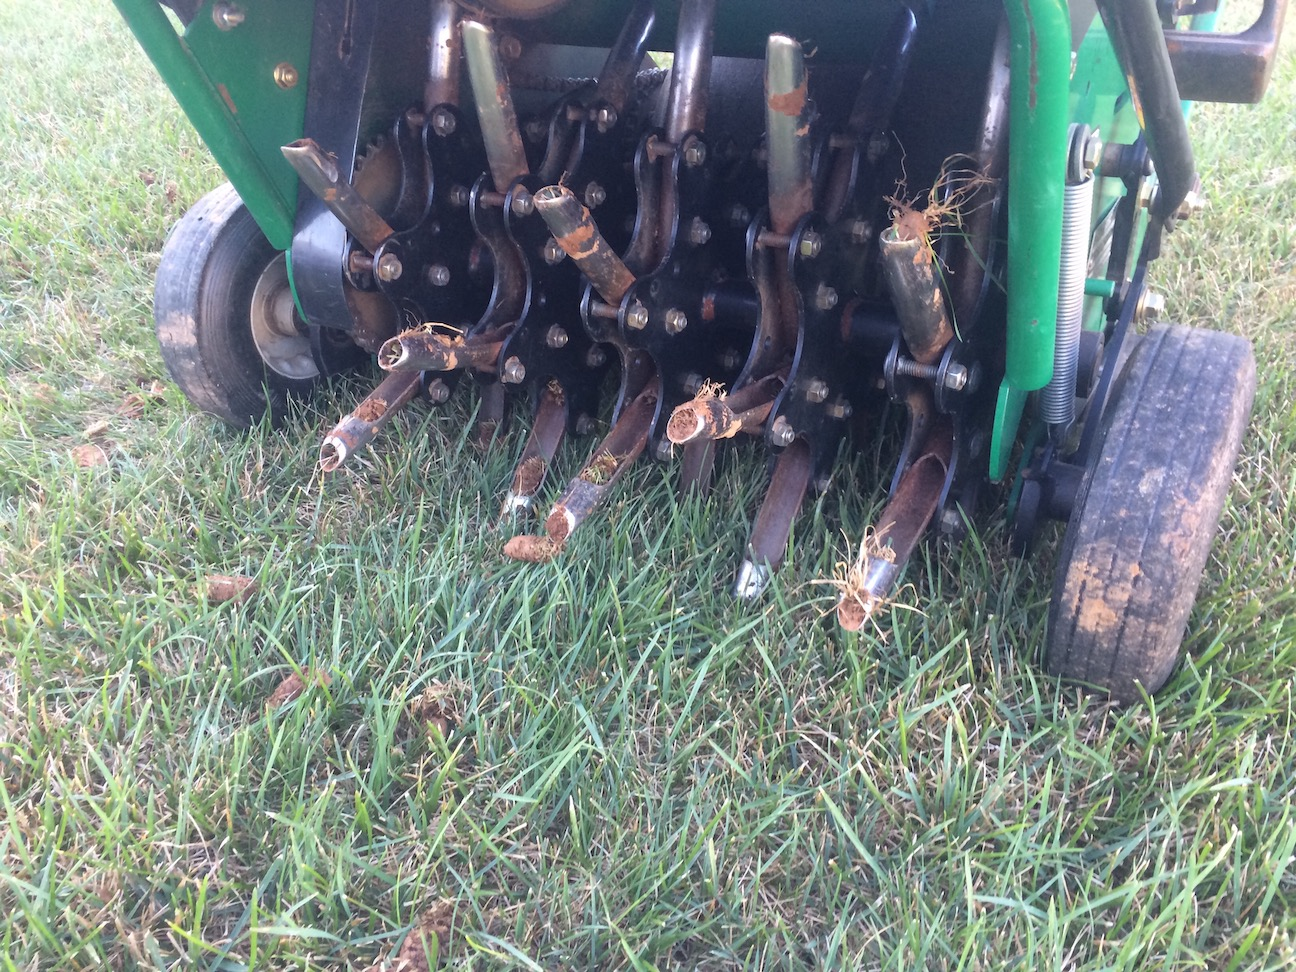 Core aerator pulling out soil to add oxygen to the roots